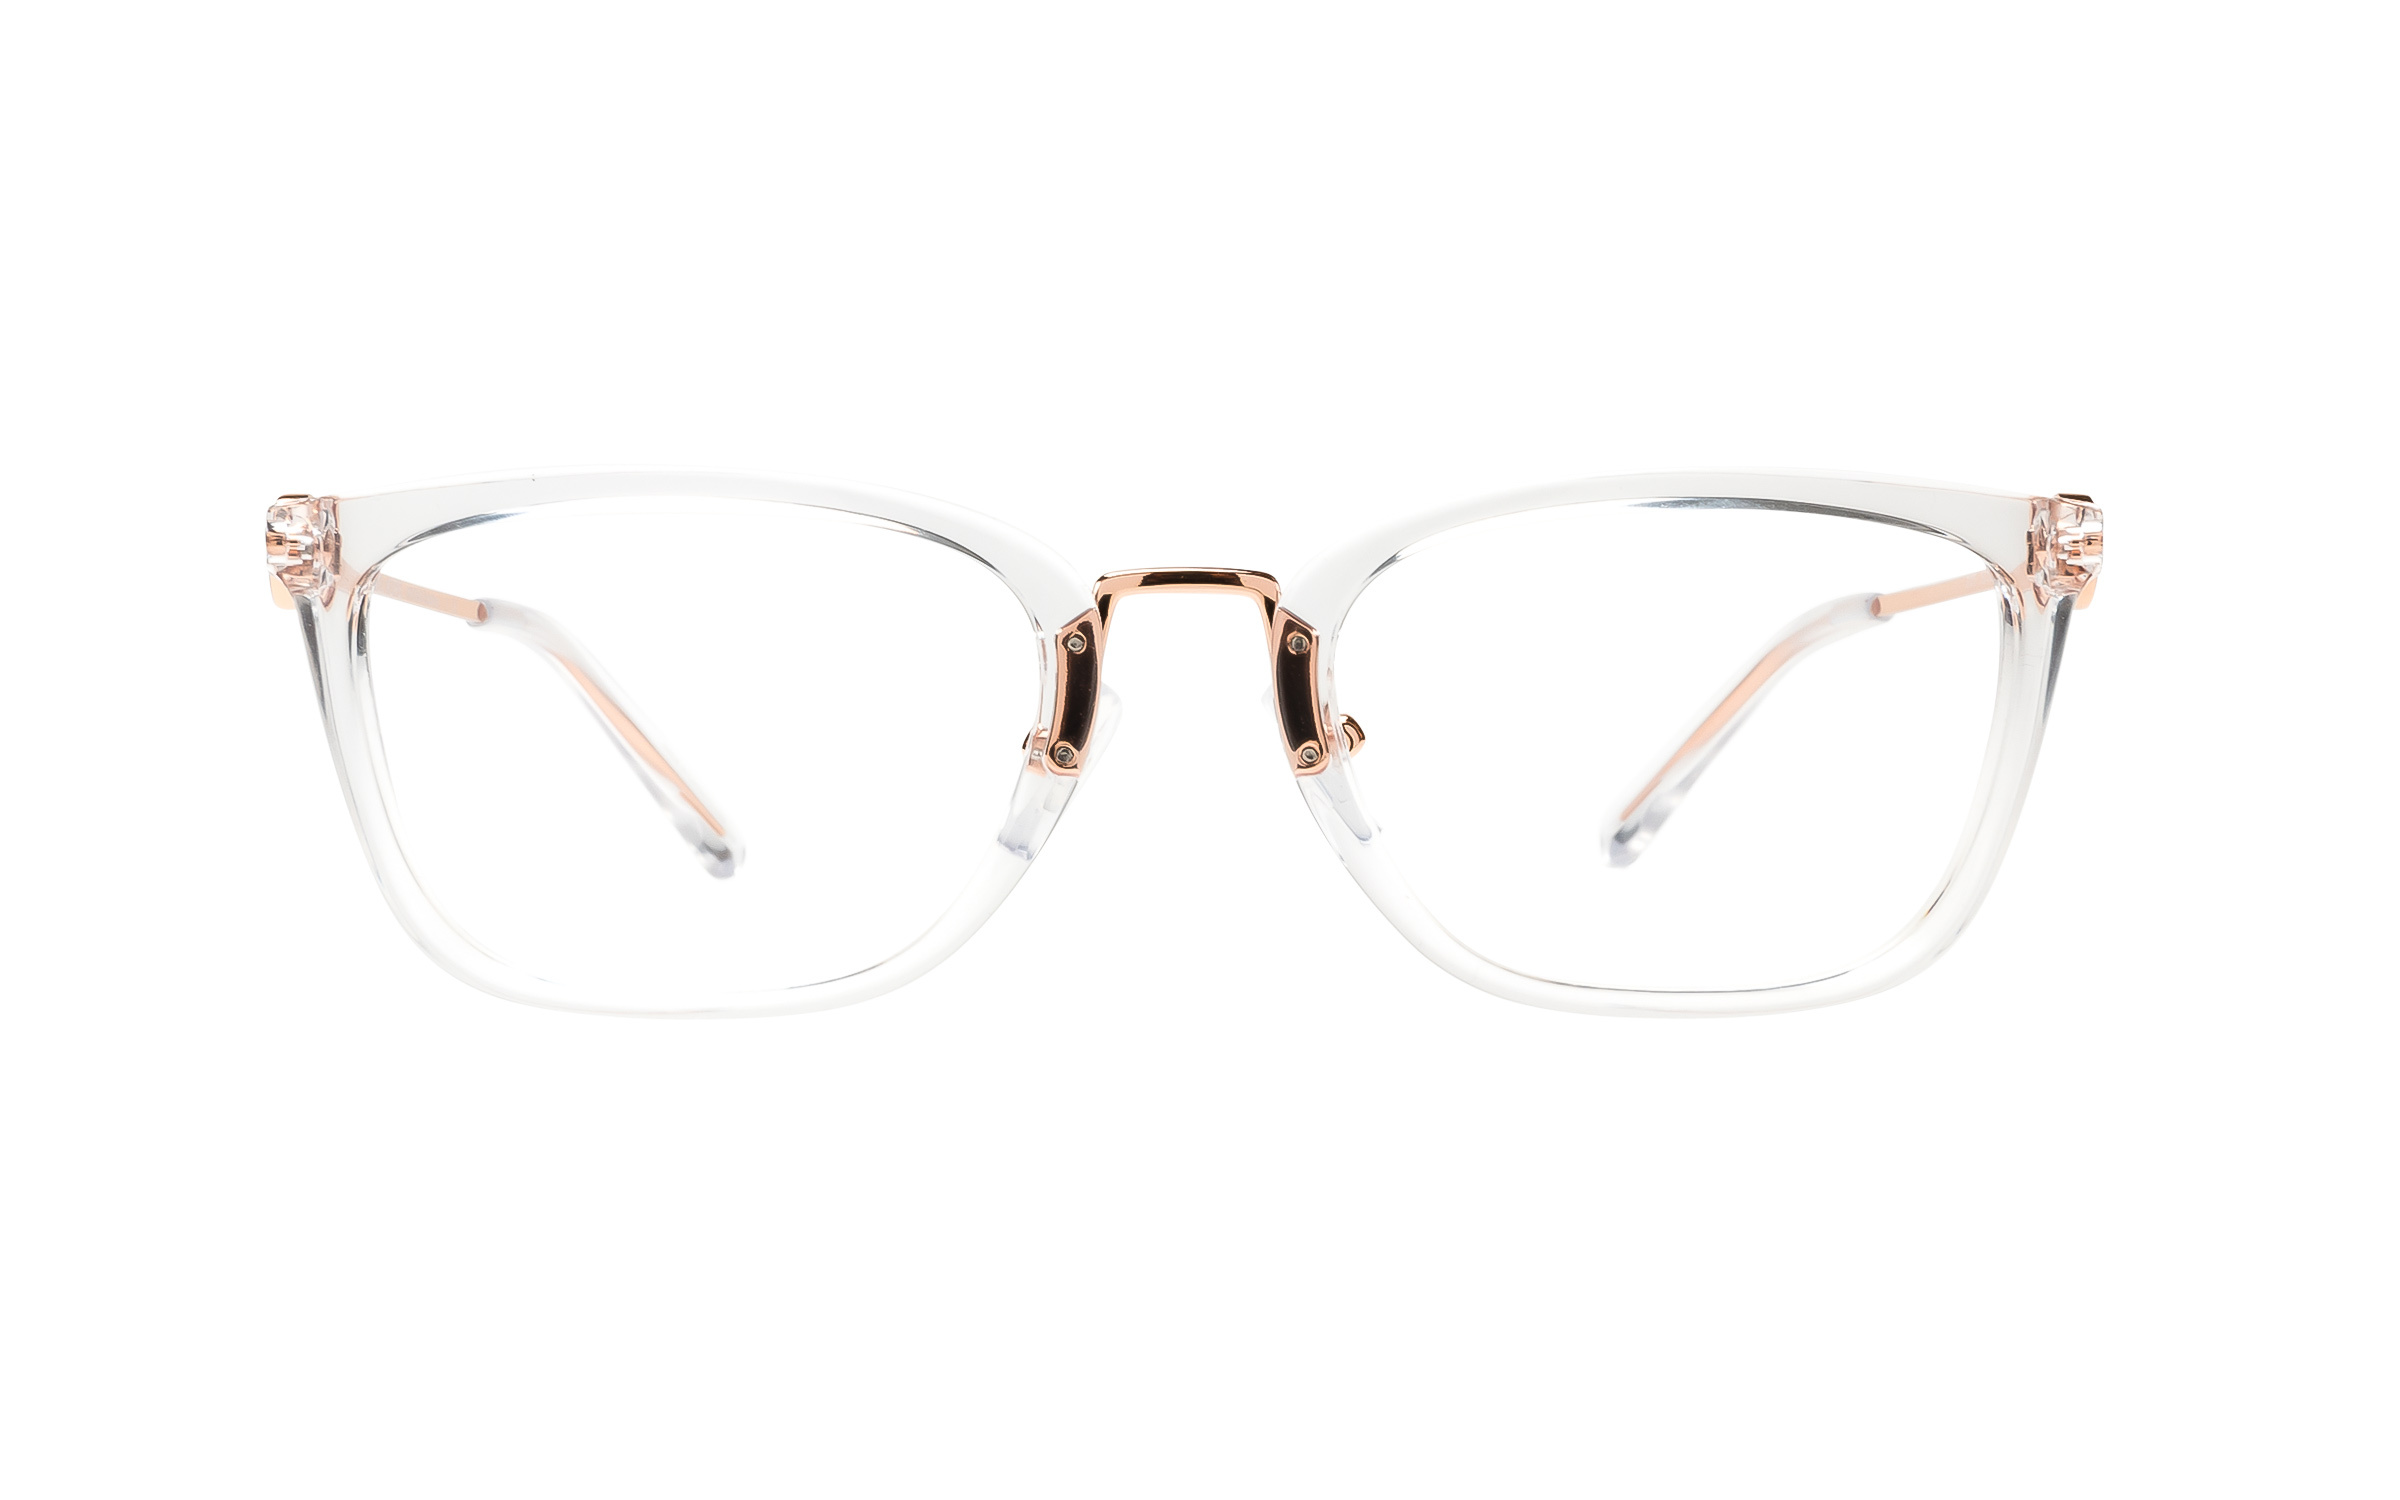 Michael Kors MK4054 3105 (52) Eyeglasses and Frame in Crystal Clear Clear/Gold | Acetate/Plastic/Metal - Online